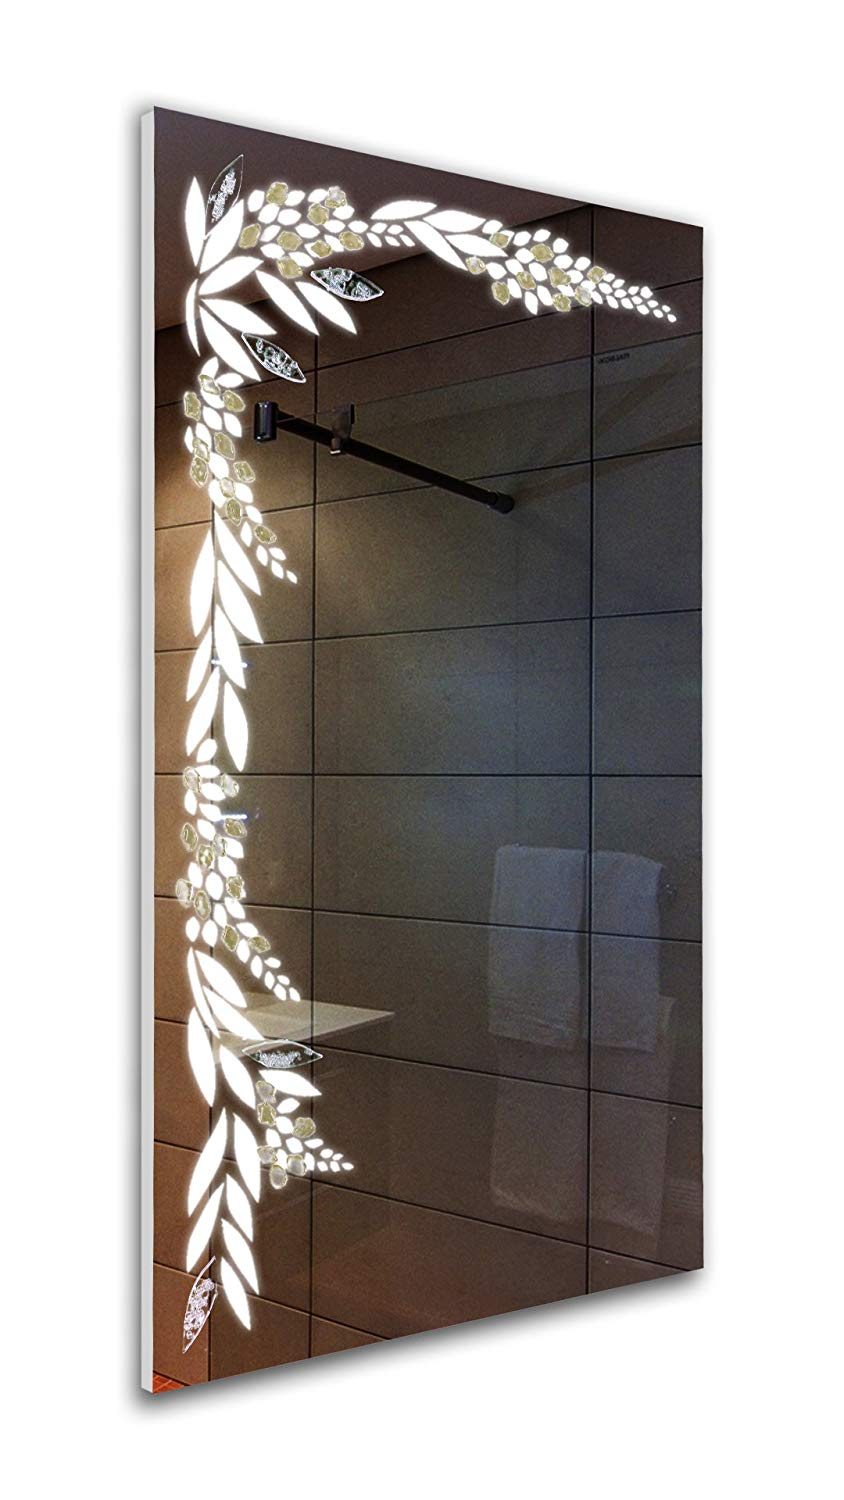 Tilebay LLC Silver Flower Led Lighted Mirror | Bathroom Mirror | Led Make-up Mirror | Glass Accents | 3 Switch Types Available 43x25